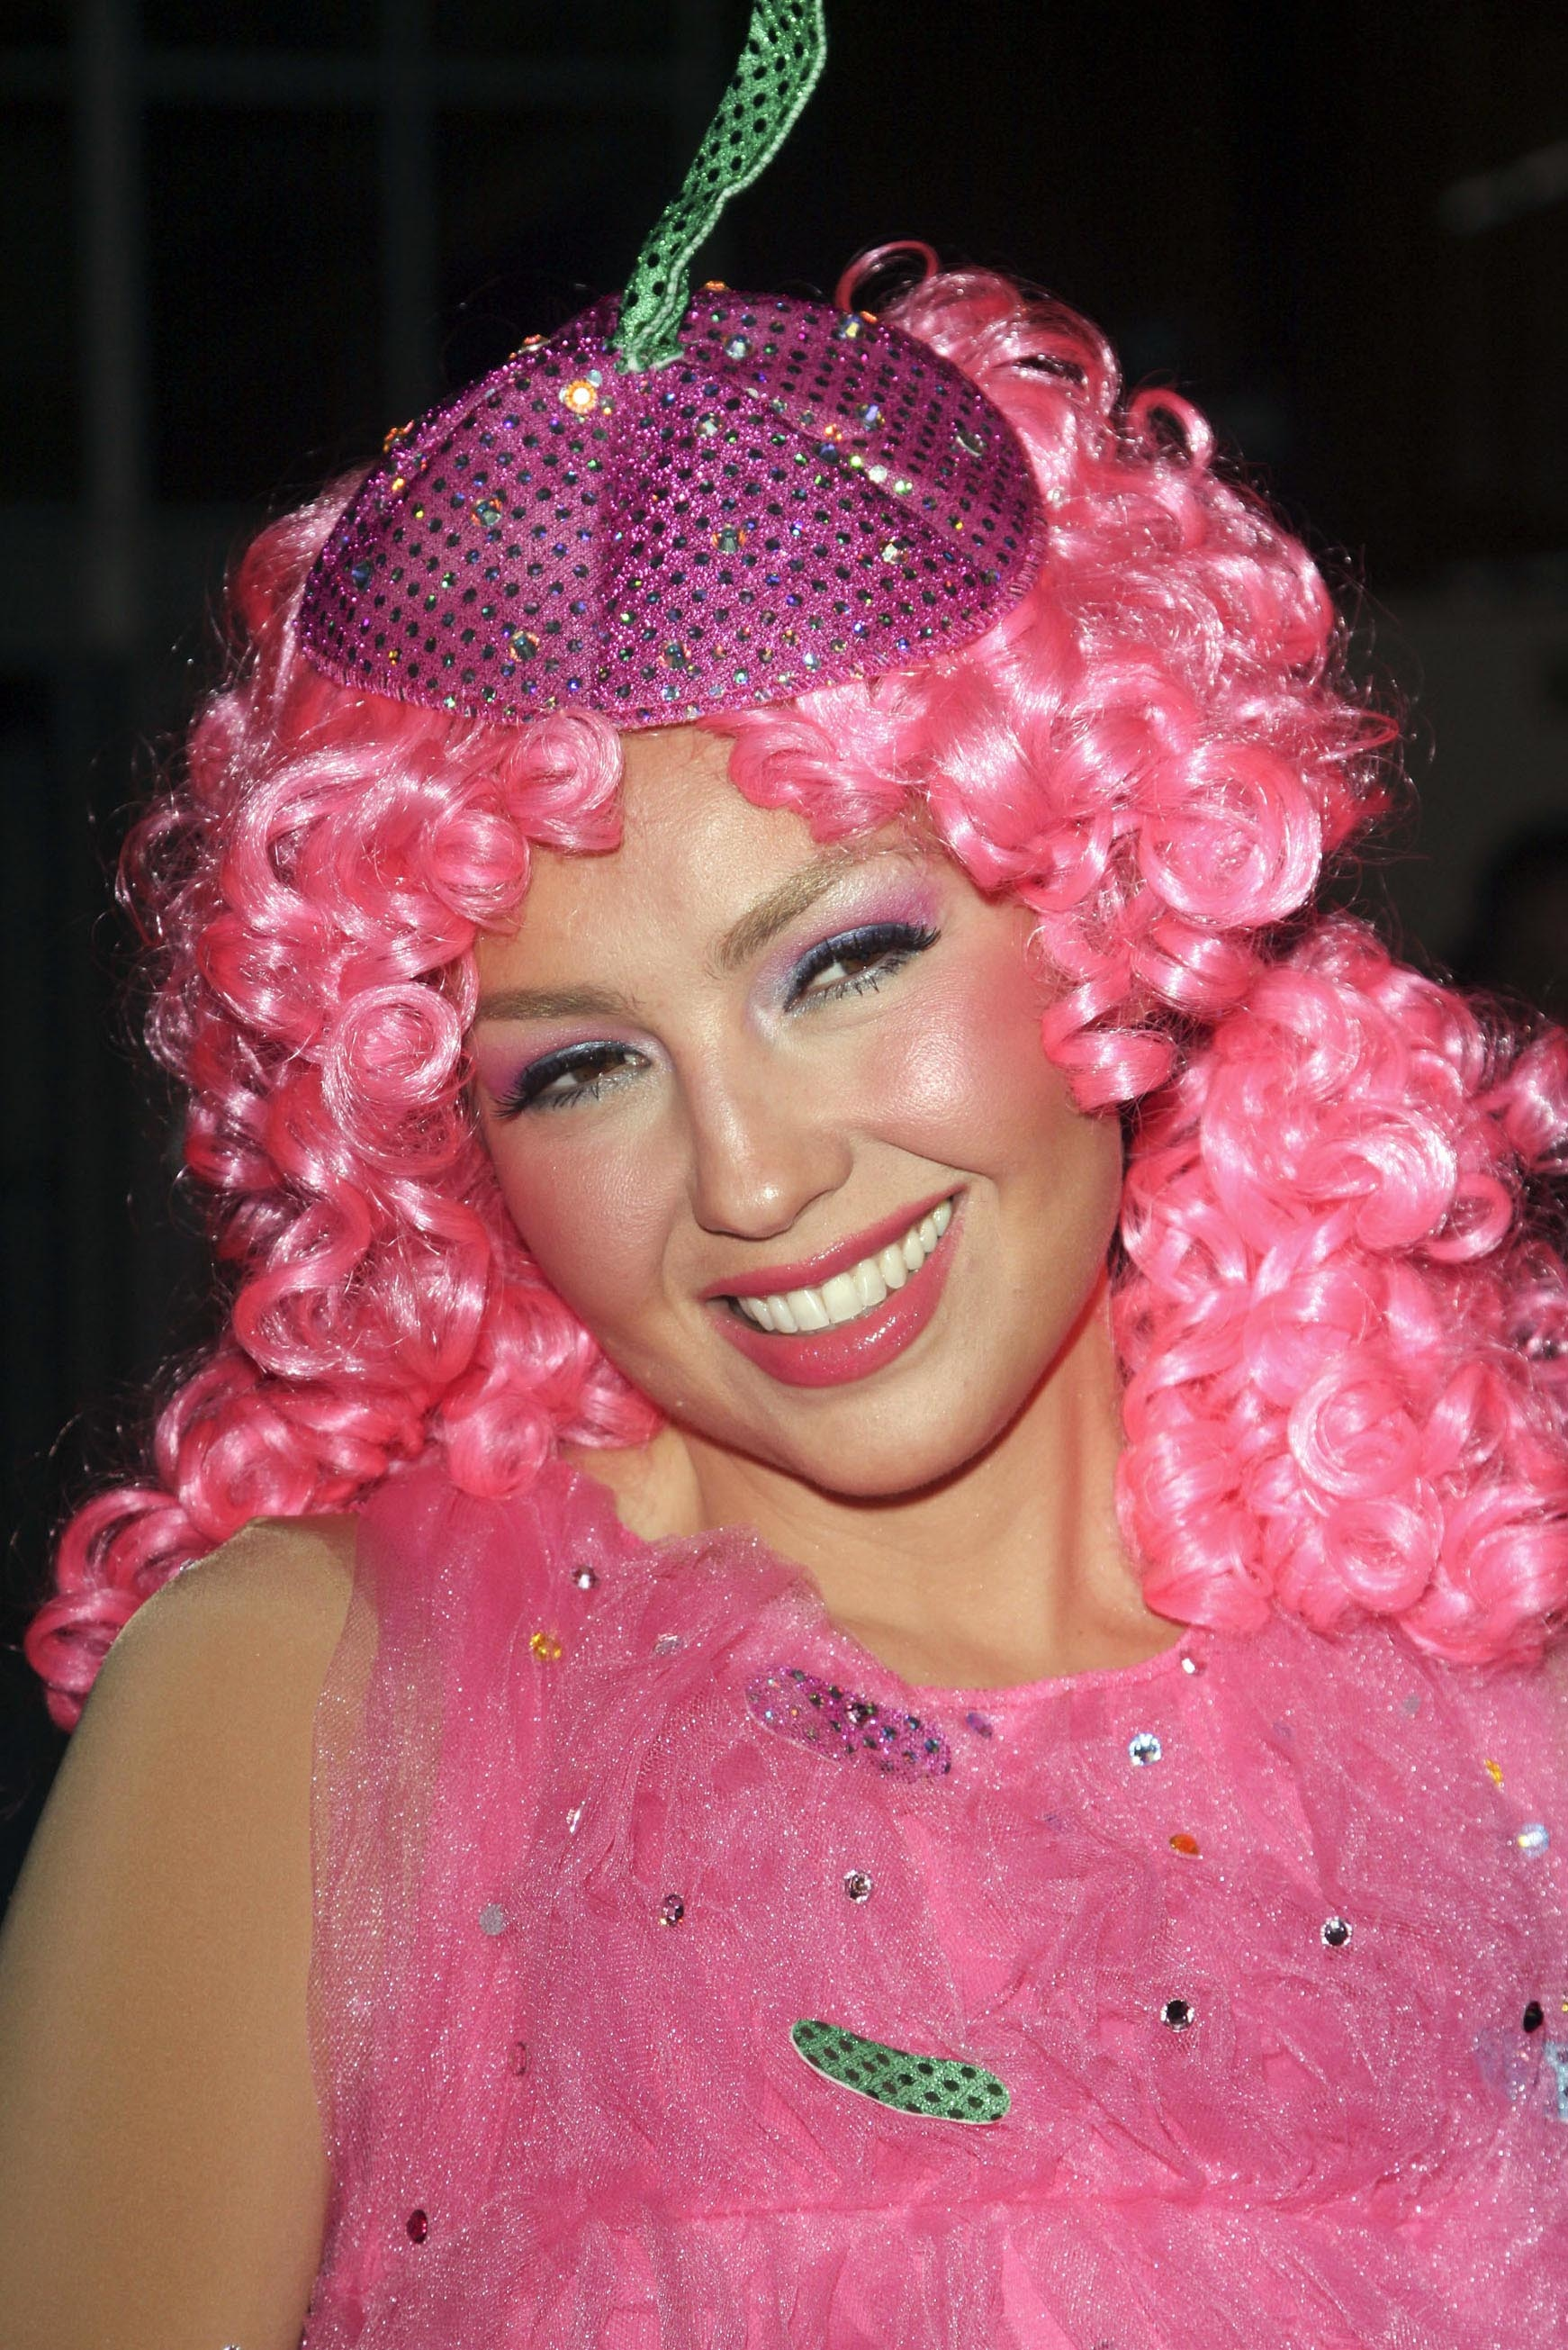 BETTE MIDLER'S ANNUAL HULAWEEN COSTUME PARTY FOR HALLOWEEN